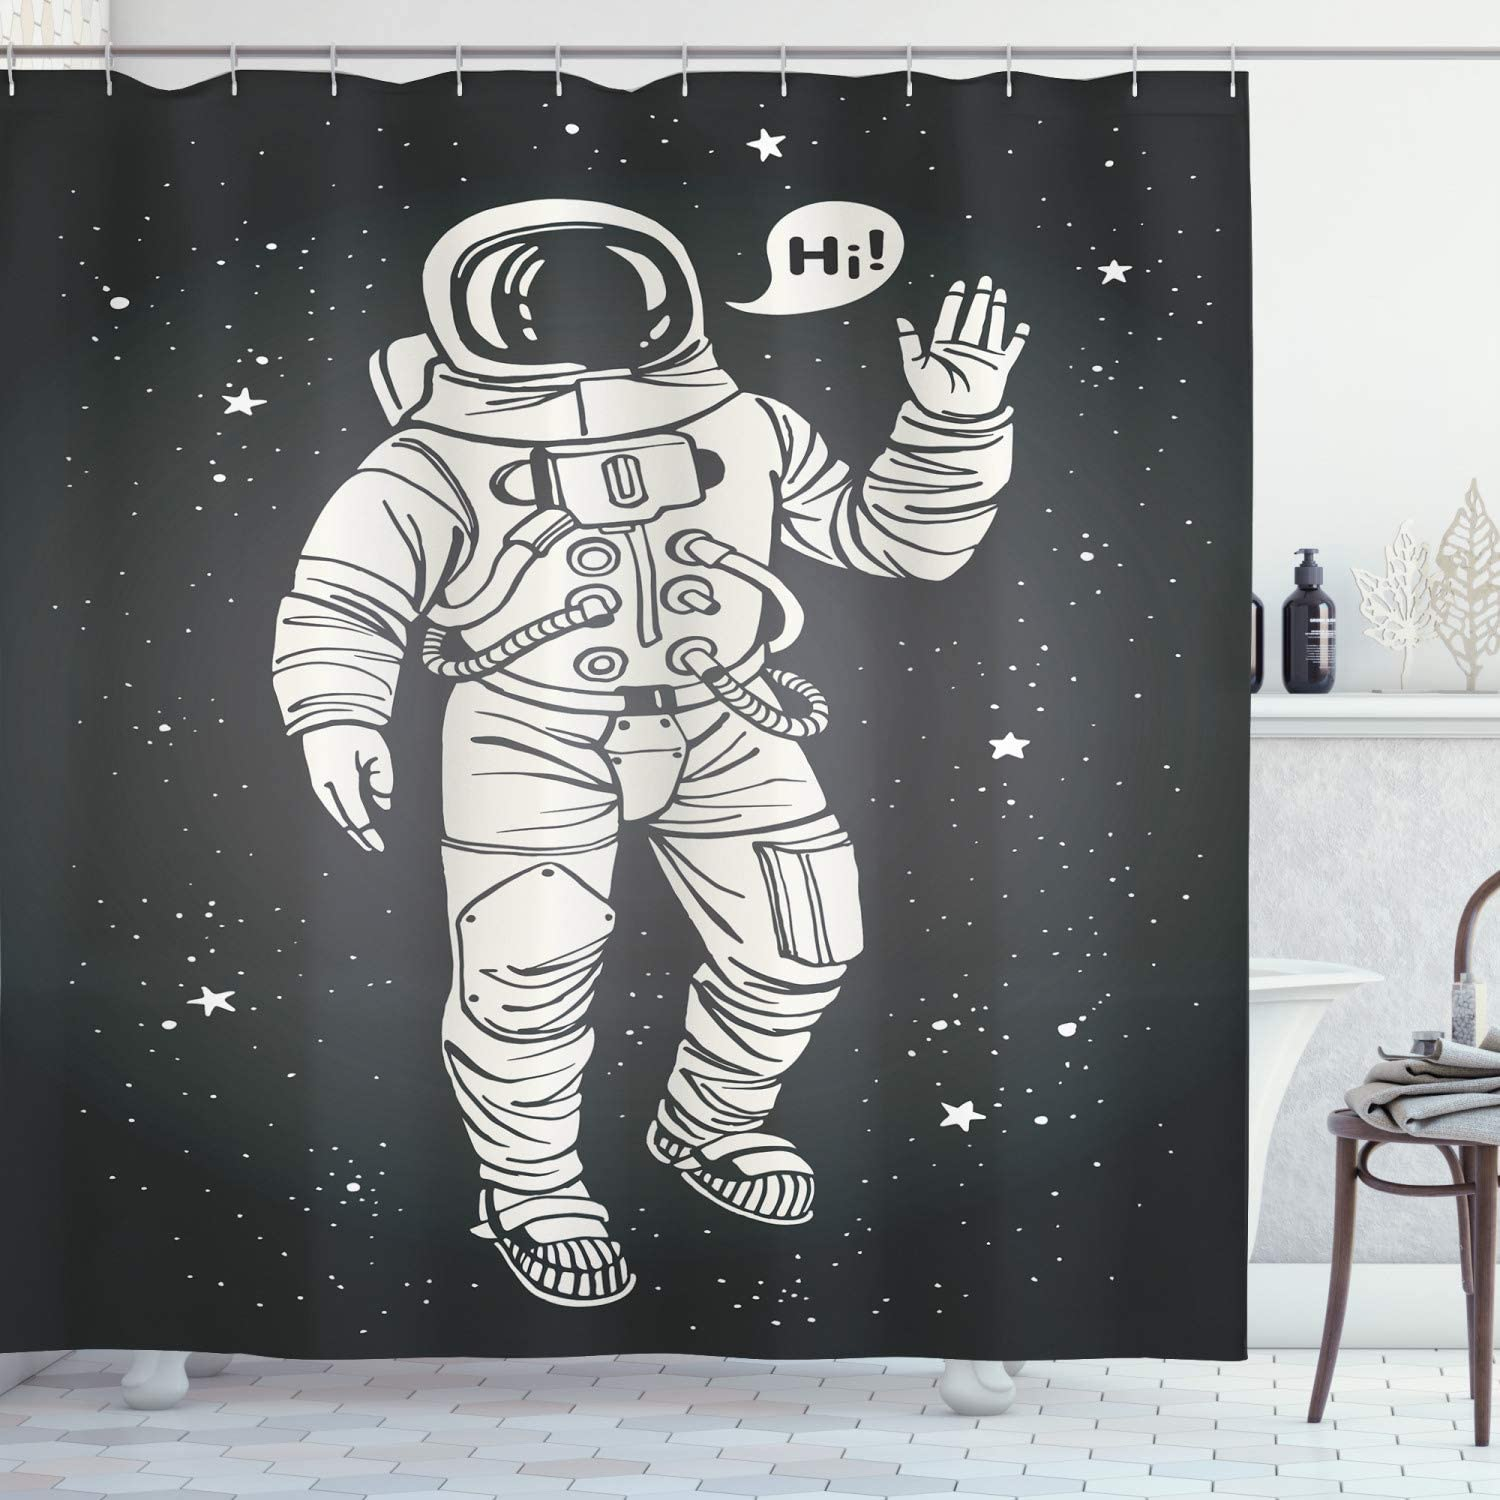 Ambesonne Outer Space Shower Curtain, Pop Art Astronaut Saluting with Speech Bubble Comet Adventure Traveler, Cloth Fabric Bathroom Decor Set with Hooks, 84